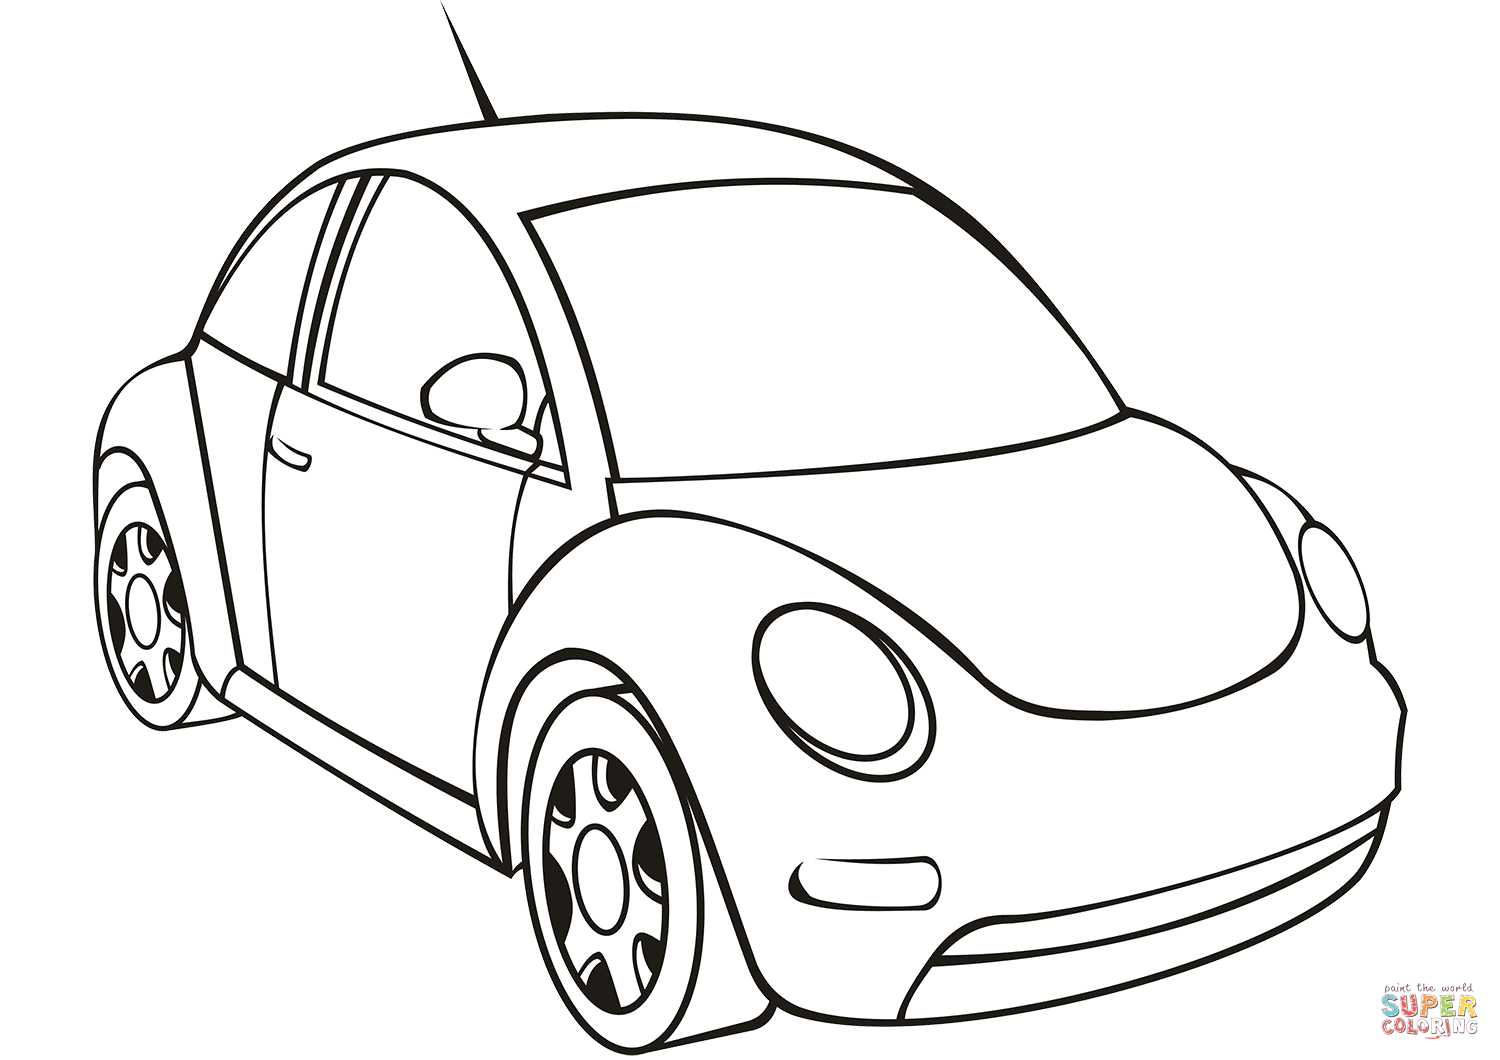 Vw Beetle Coloring Page Free Printable Coloring Pages Cars Coloring Pages Beetle Drawing Coloring Pages